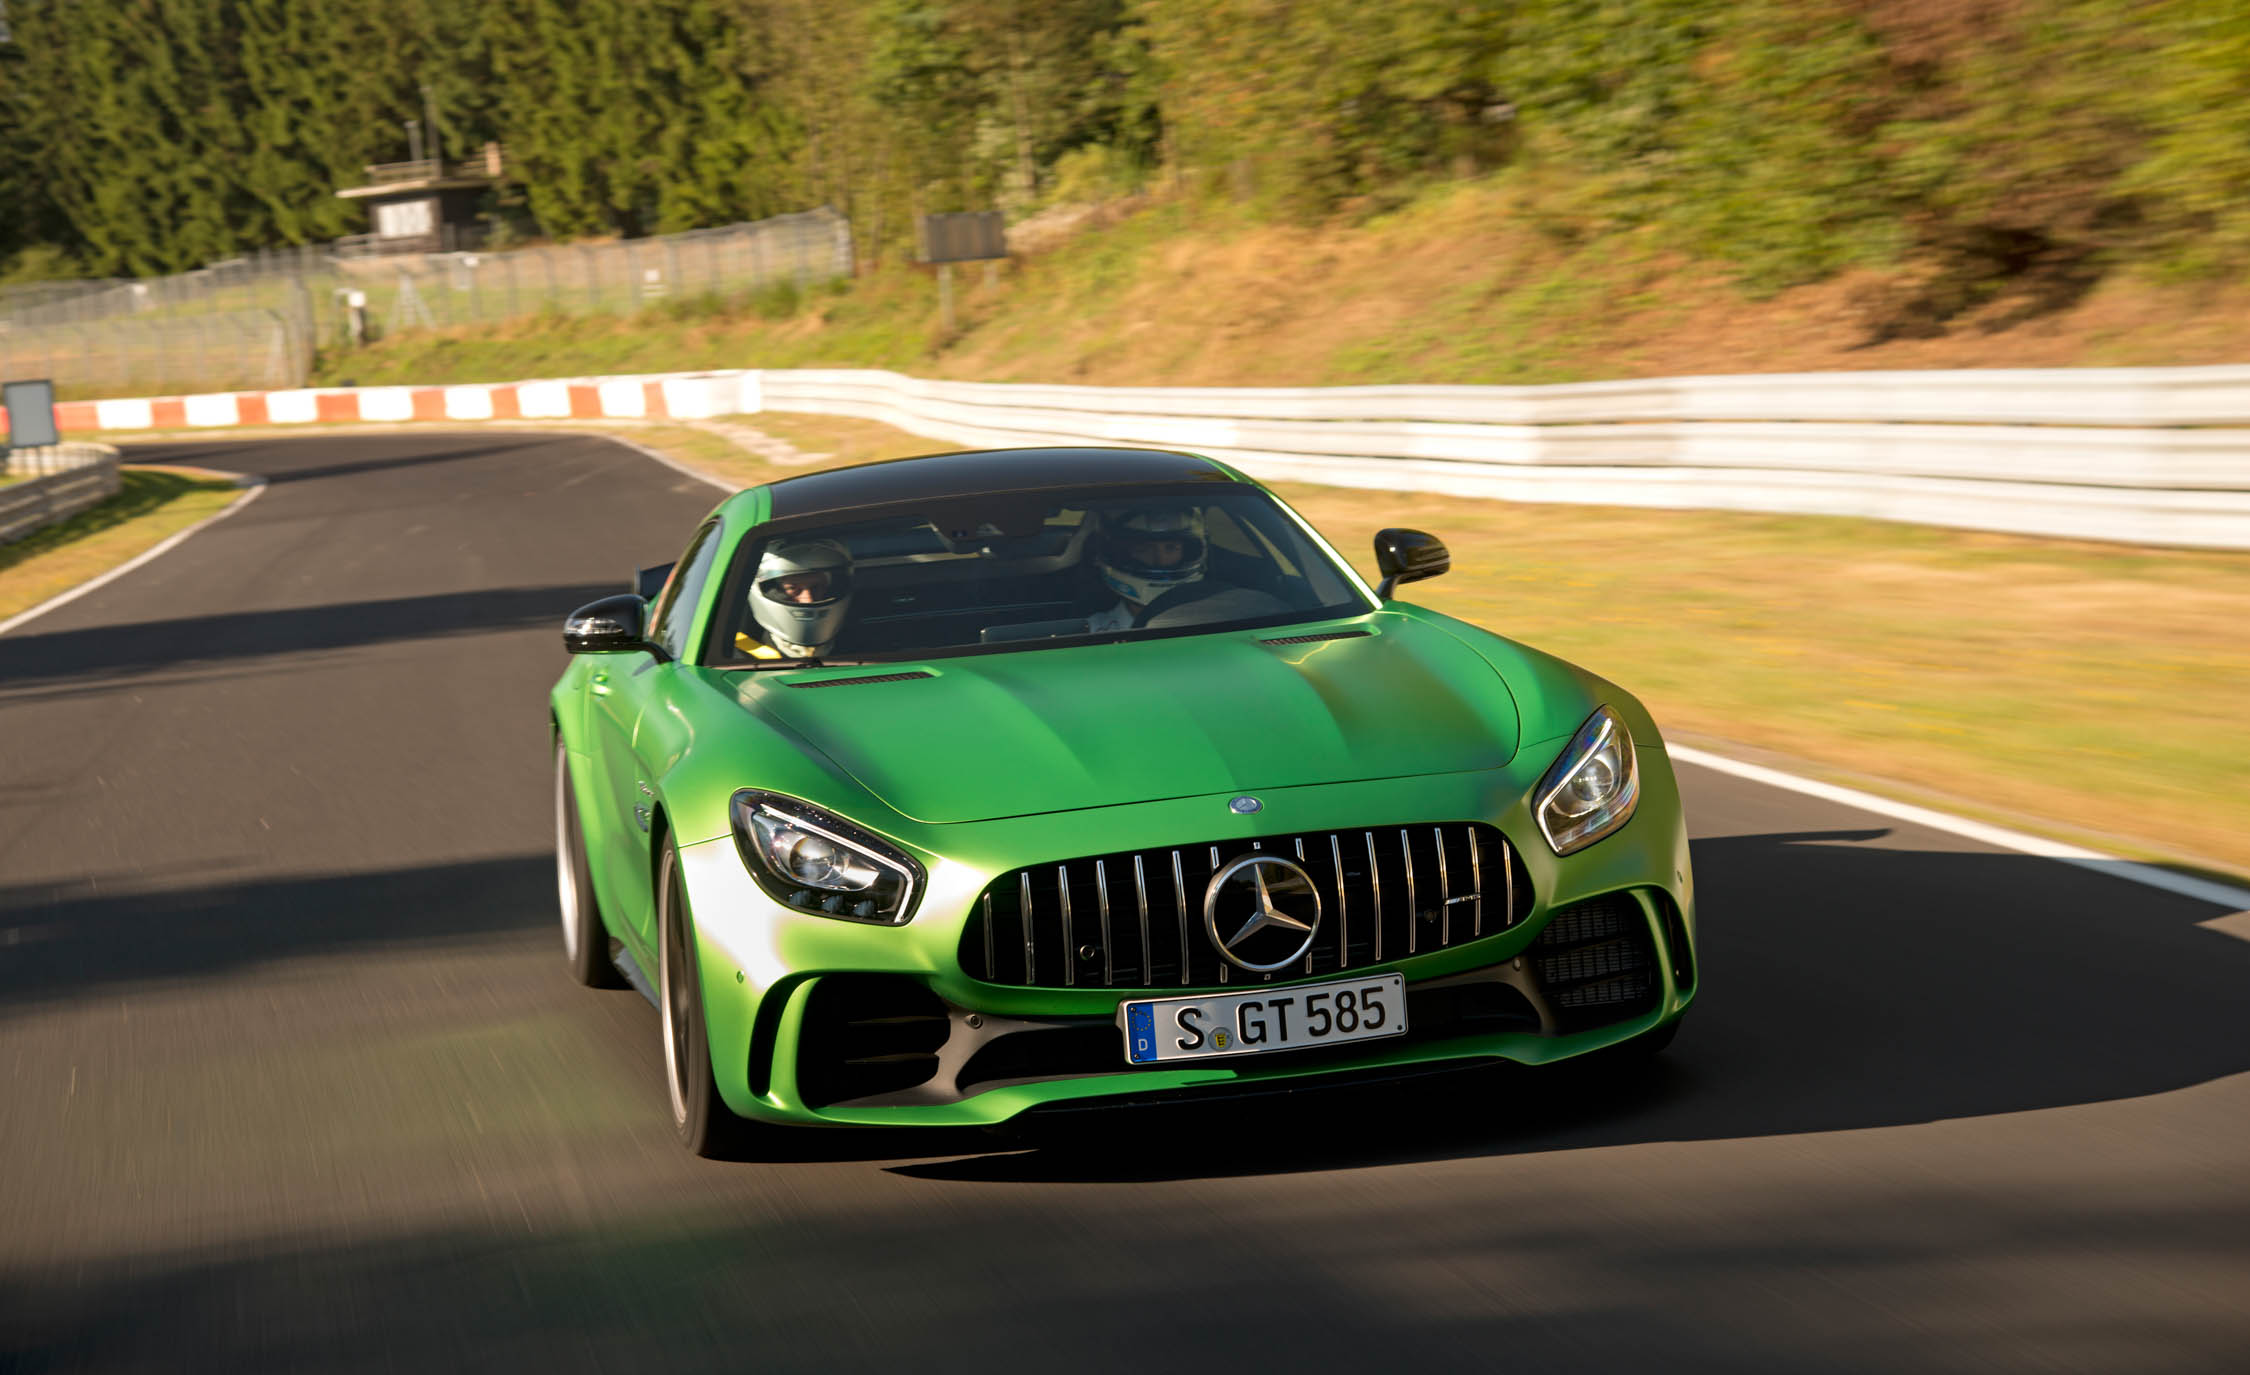 2017 Mercedes Amg Gt R Front View (View 9 of 22)